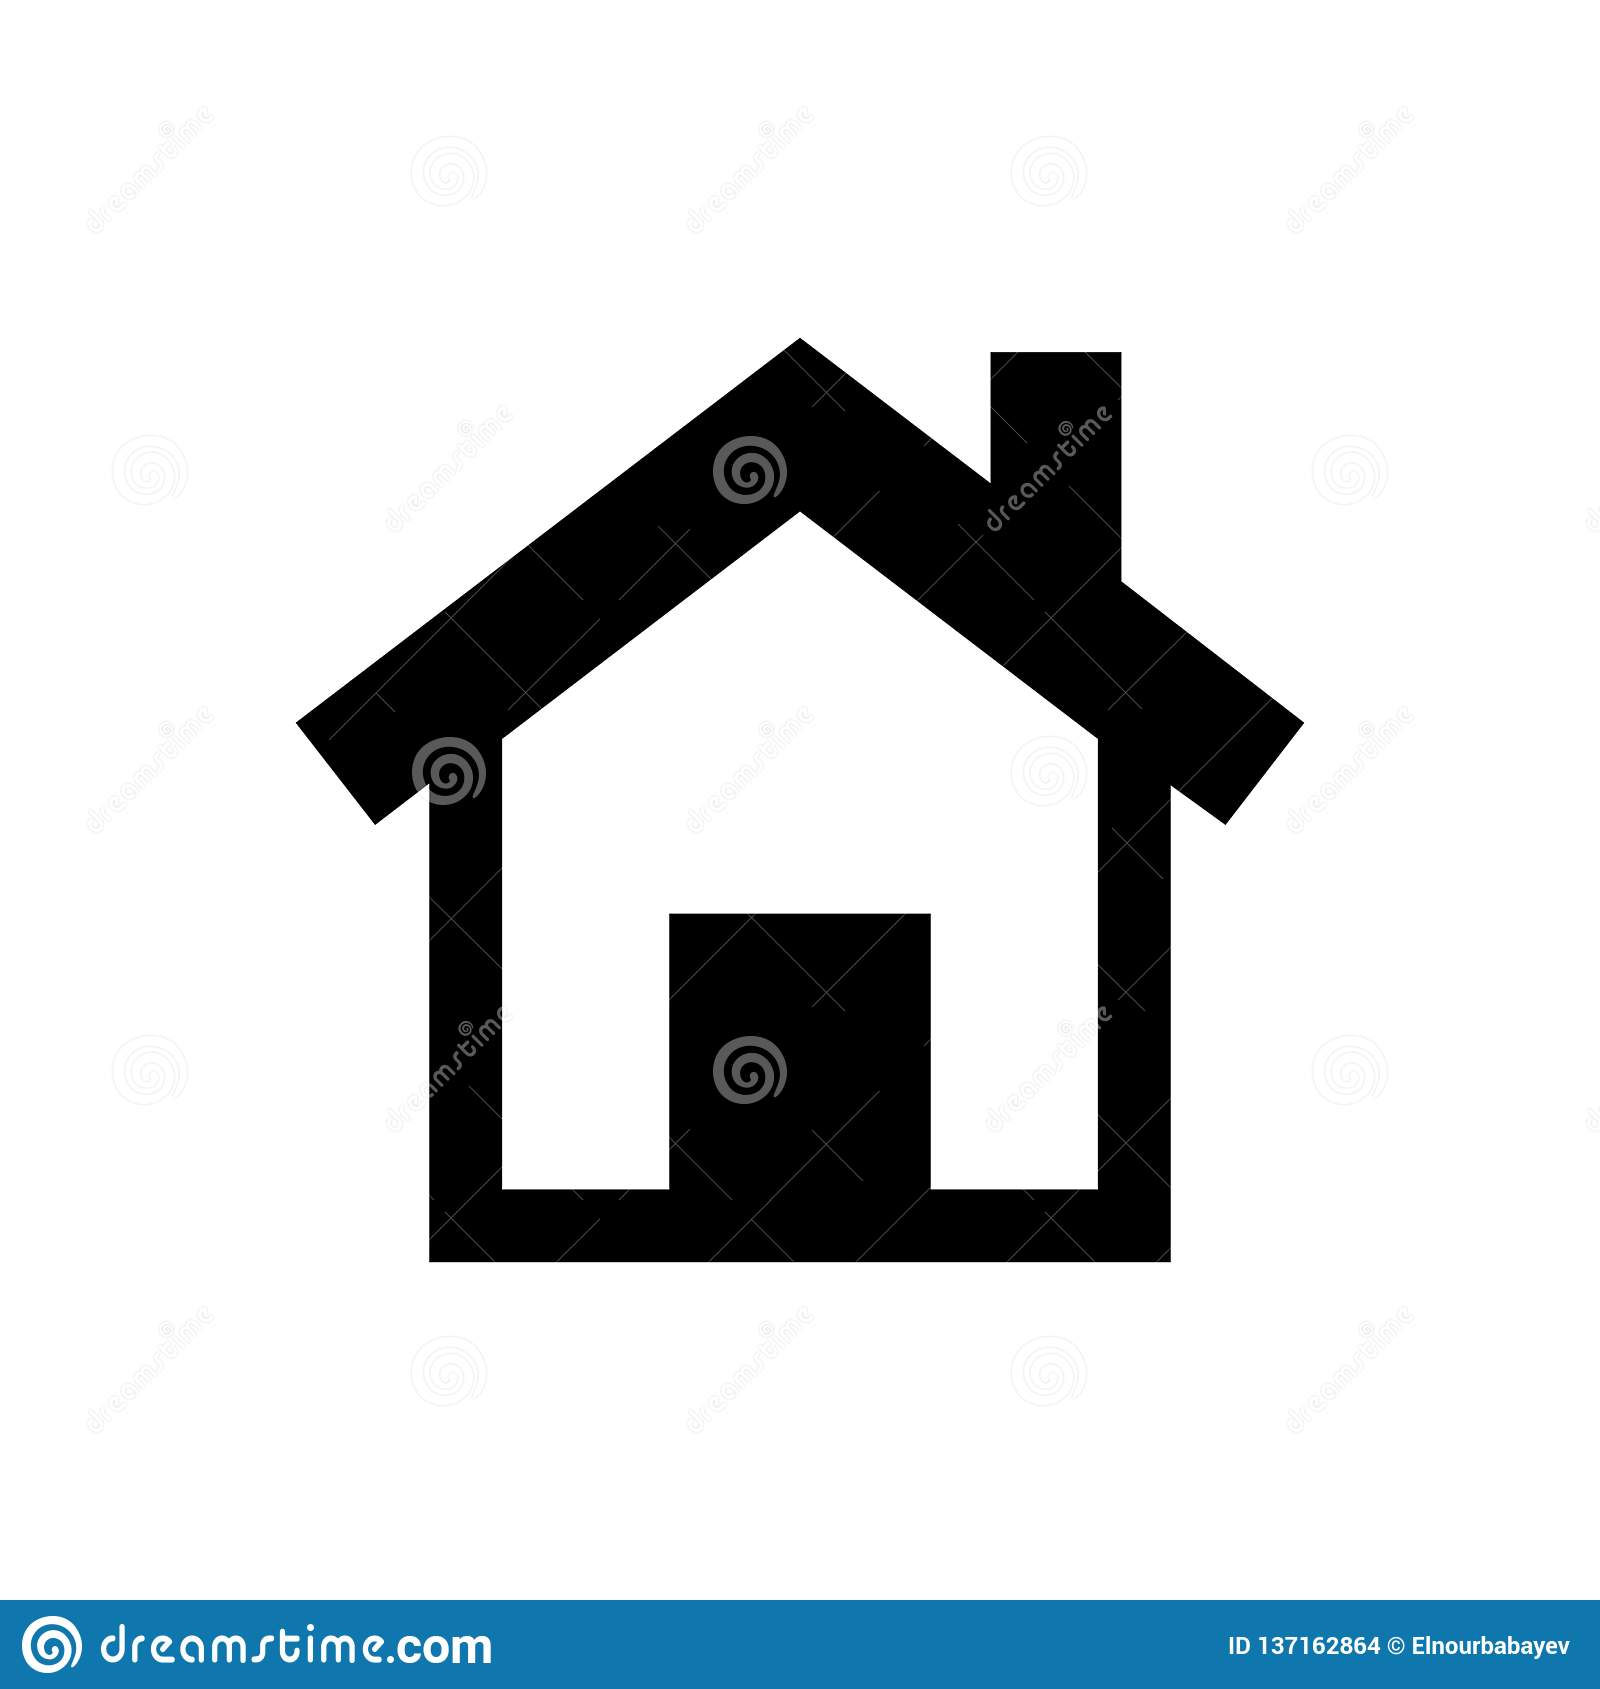 Home Icon In Trendy Flat Style Isolated On Grey Background Homepage Symbol For Your Web Site Design Logo App Ui Vector Stock Illustration Illustration Of Button Element 137162864